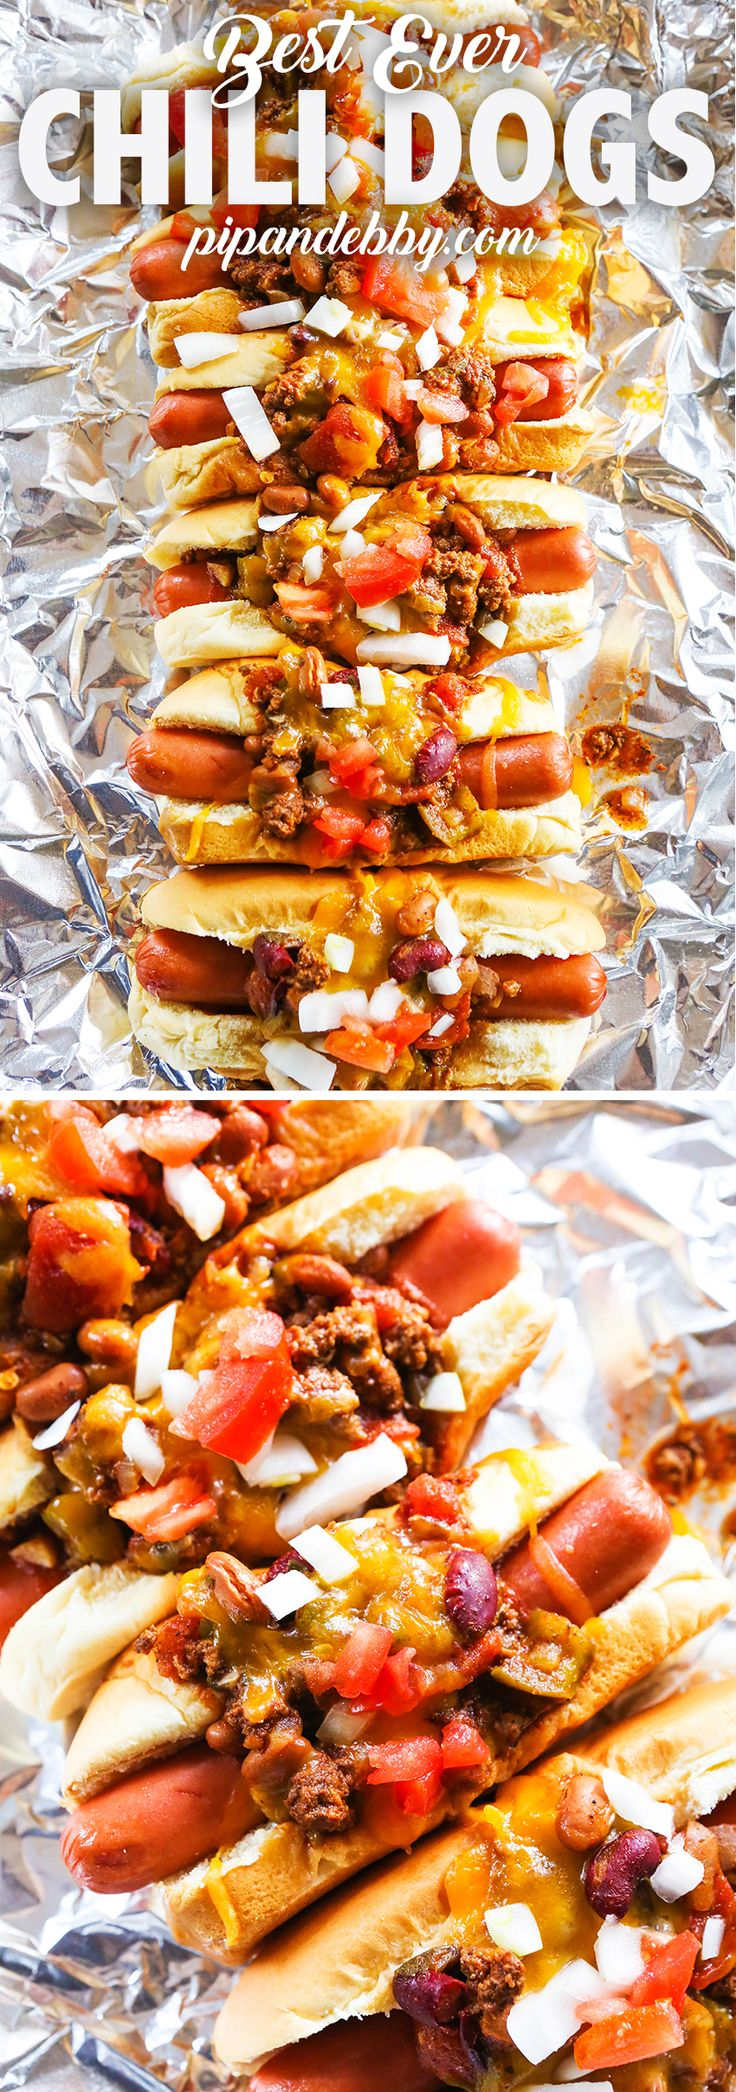 Best Ever Chili Dogs Recipe | Great use for leftover chili! These Chili Dogs are comforting and delicious and great as a dinner or party food!